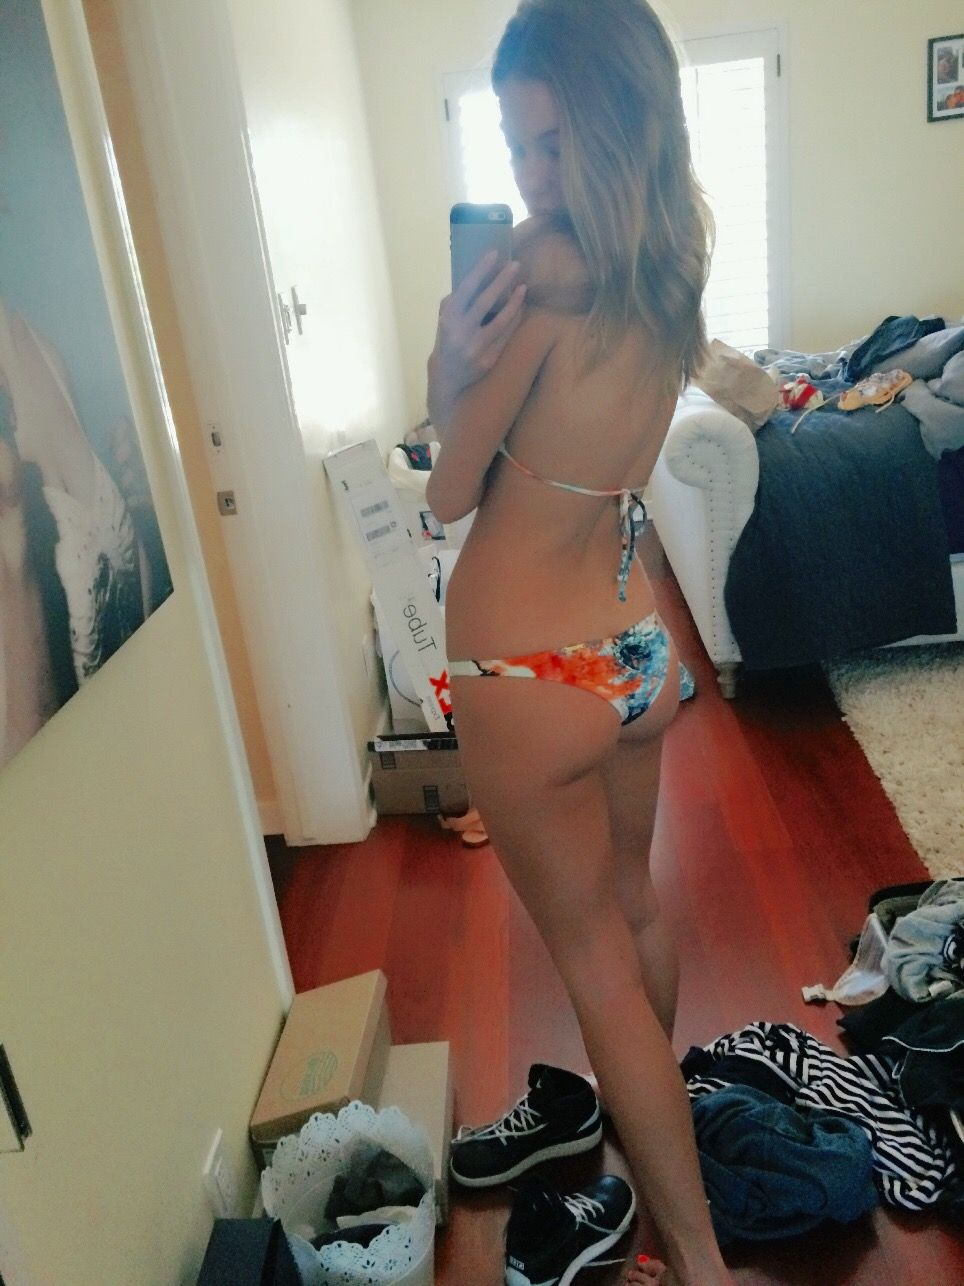 Lili-Simmons-Leaked-54-thefappening.nu_8d9fb.jpg